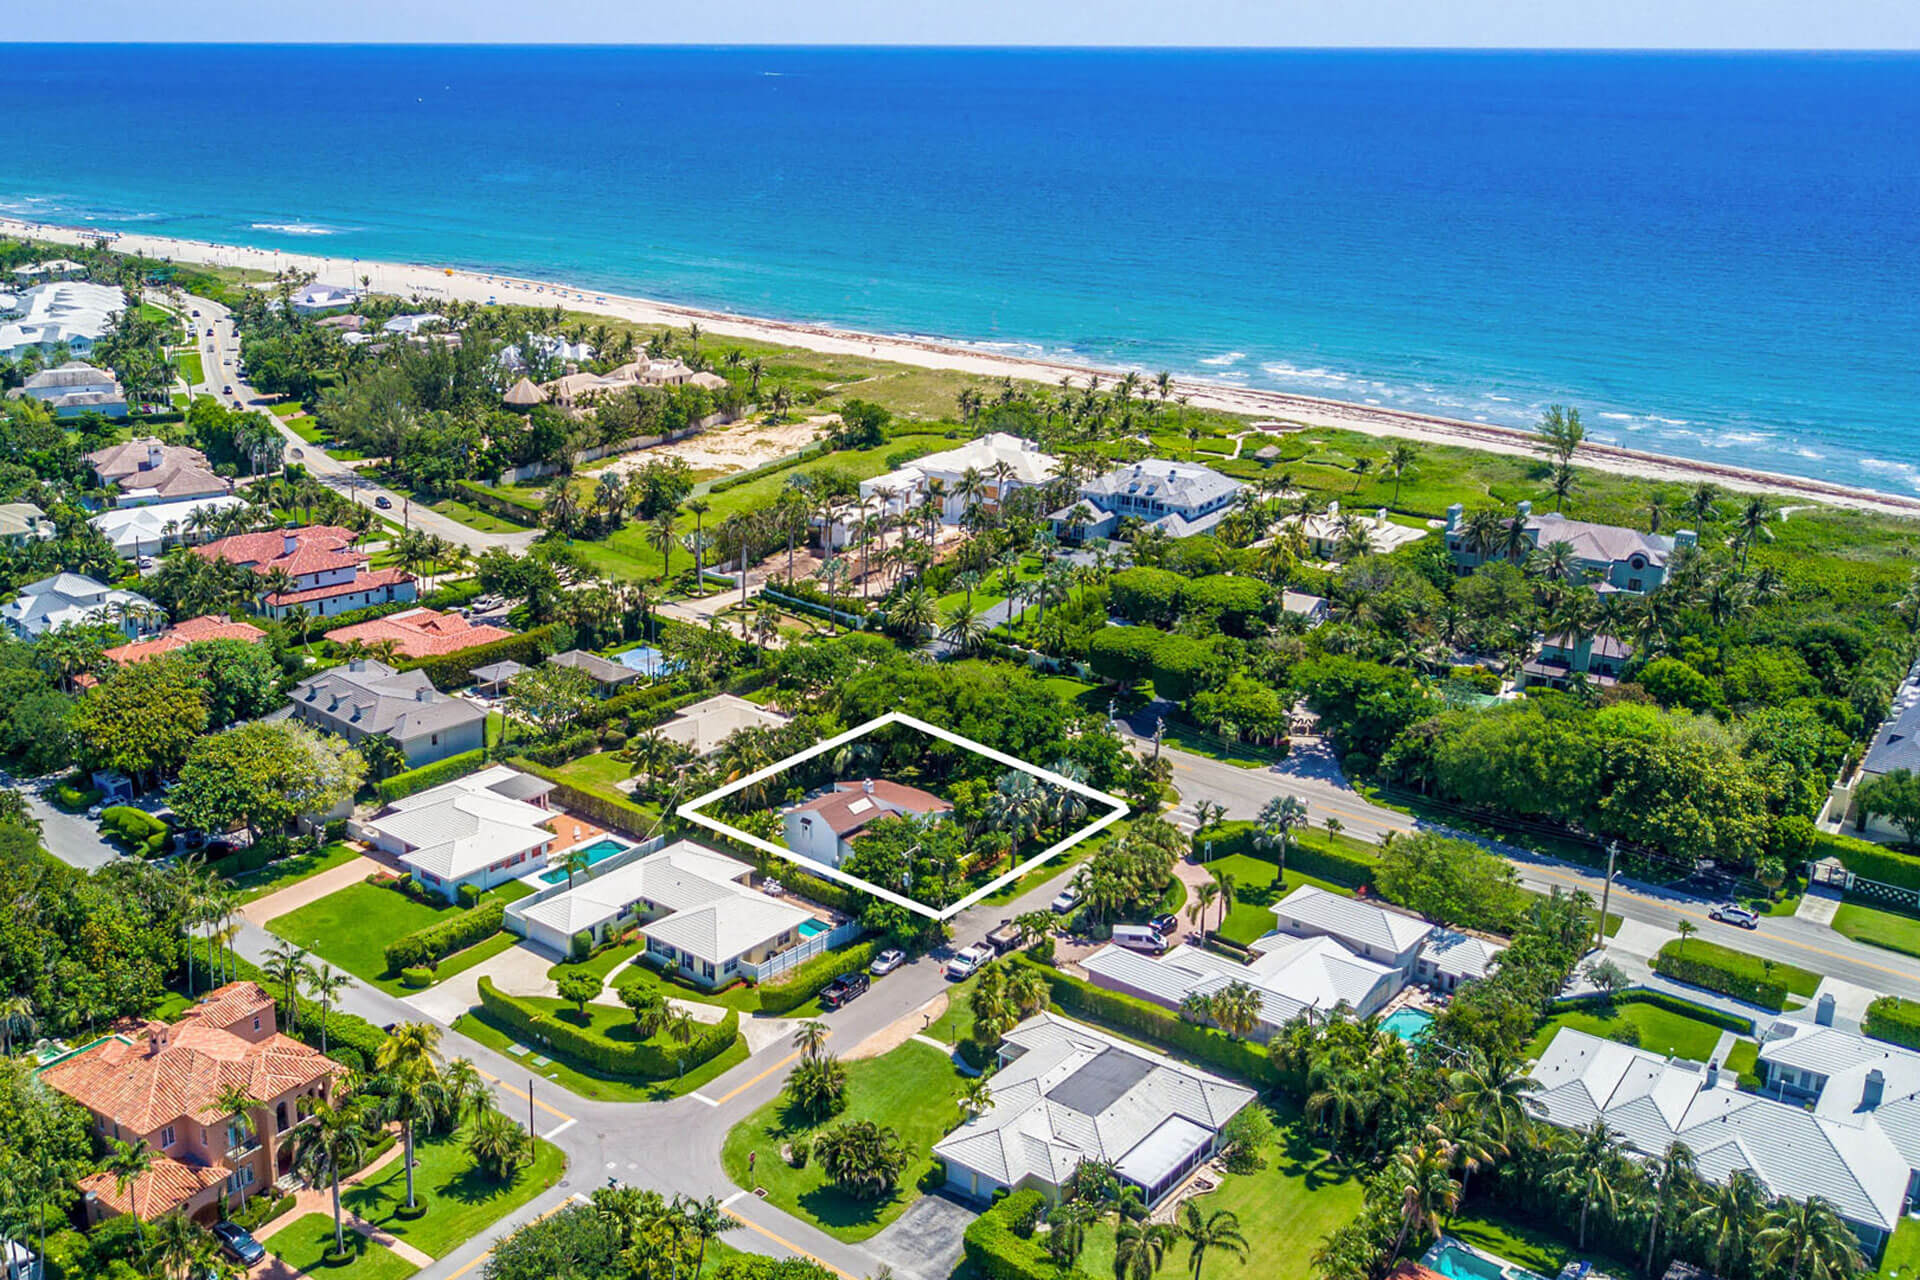 East Delray Beach Parcel Hits the Luxury Real Estate Market